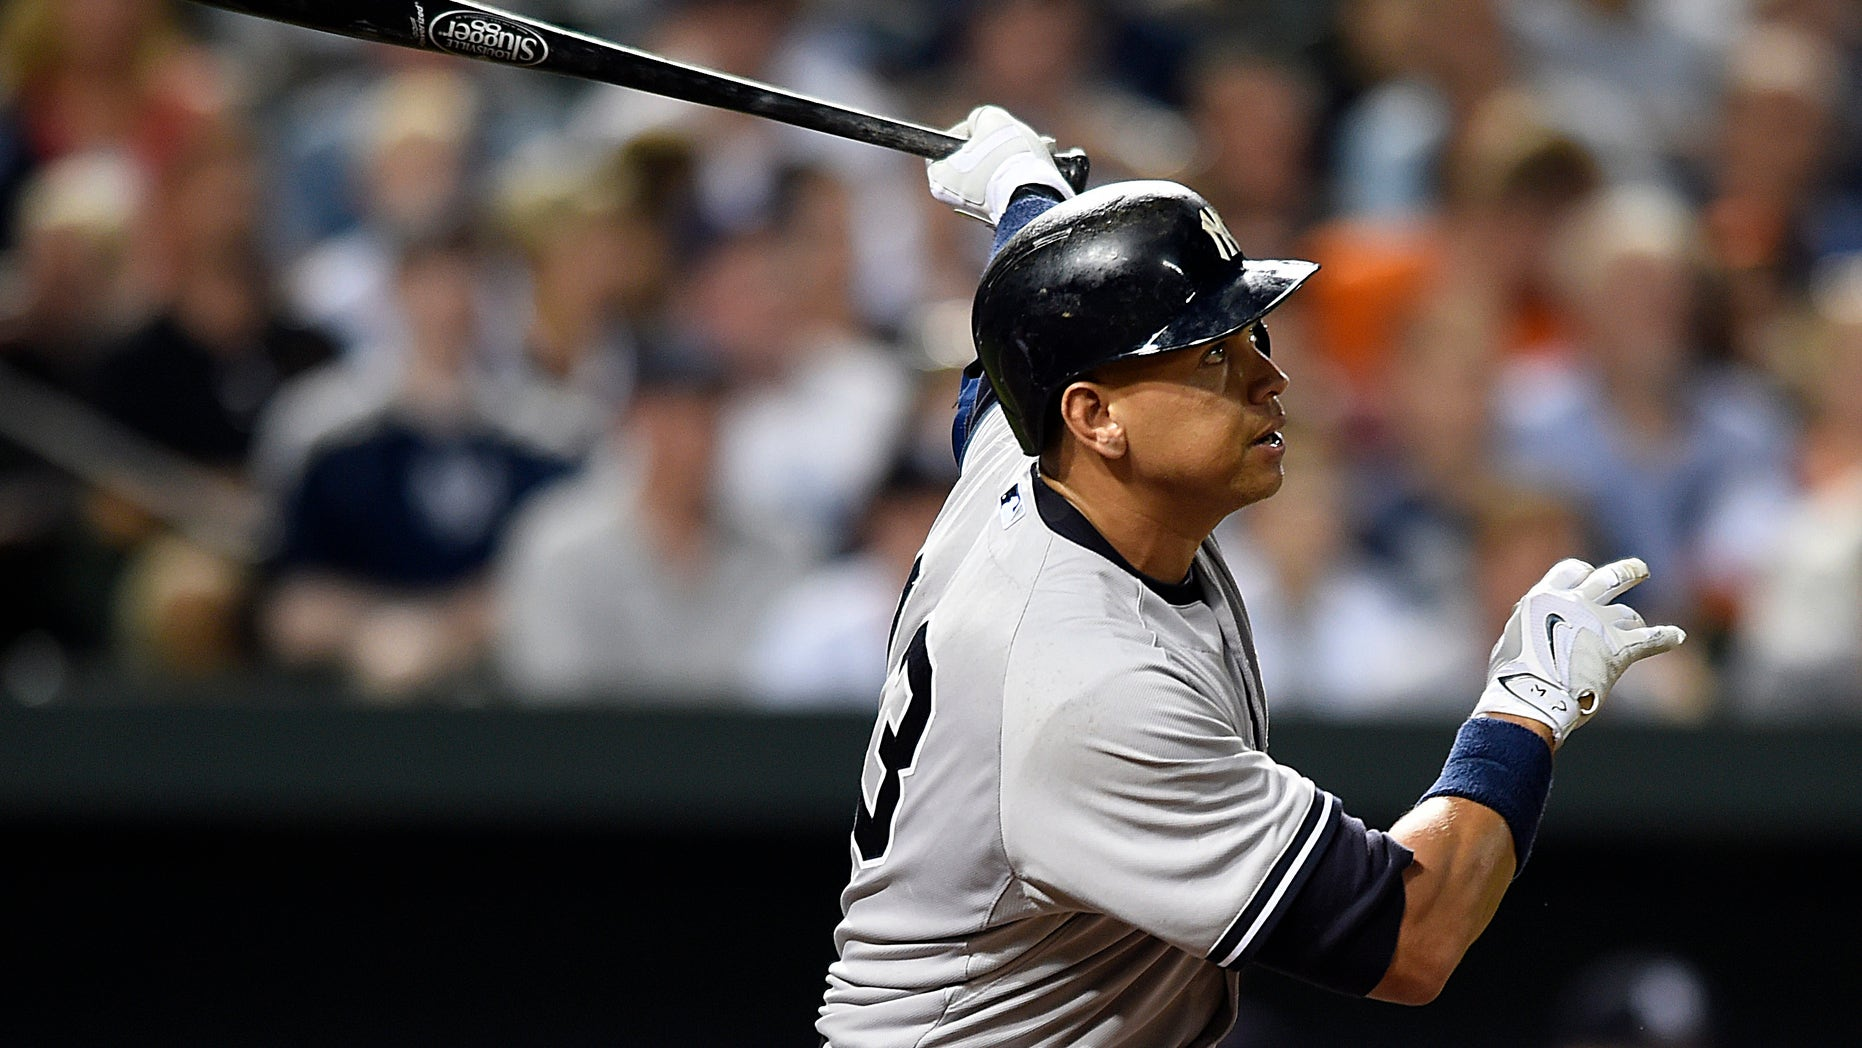 New York Yankees' Alex Rodriguez follows through on a two-run home run against the Baltimore Orioles during the sixth inning of a baseball game Saturday, June 13, 2015, in Baltimore. (AP Photo/Gail Burton)